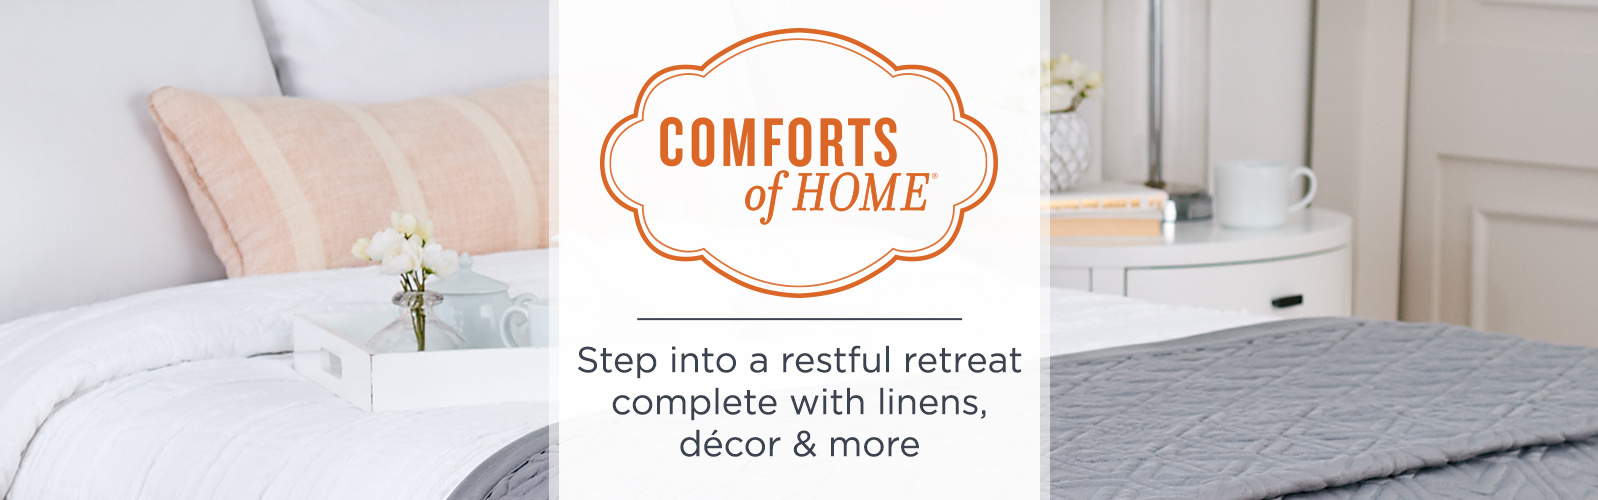 Comforts of Home - Step into a restful retreat complete with linens, décor & more